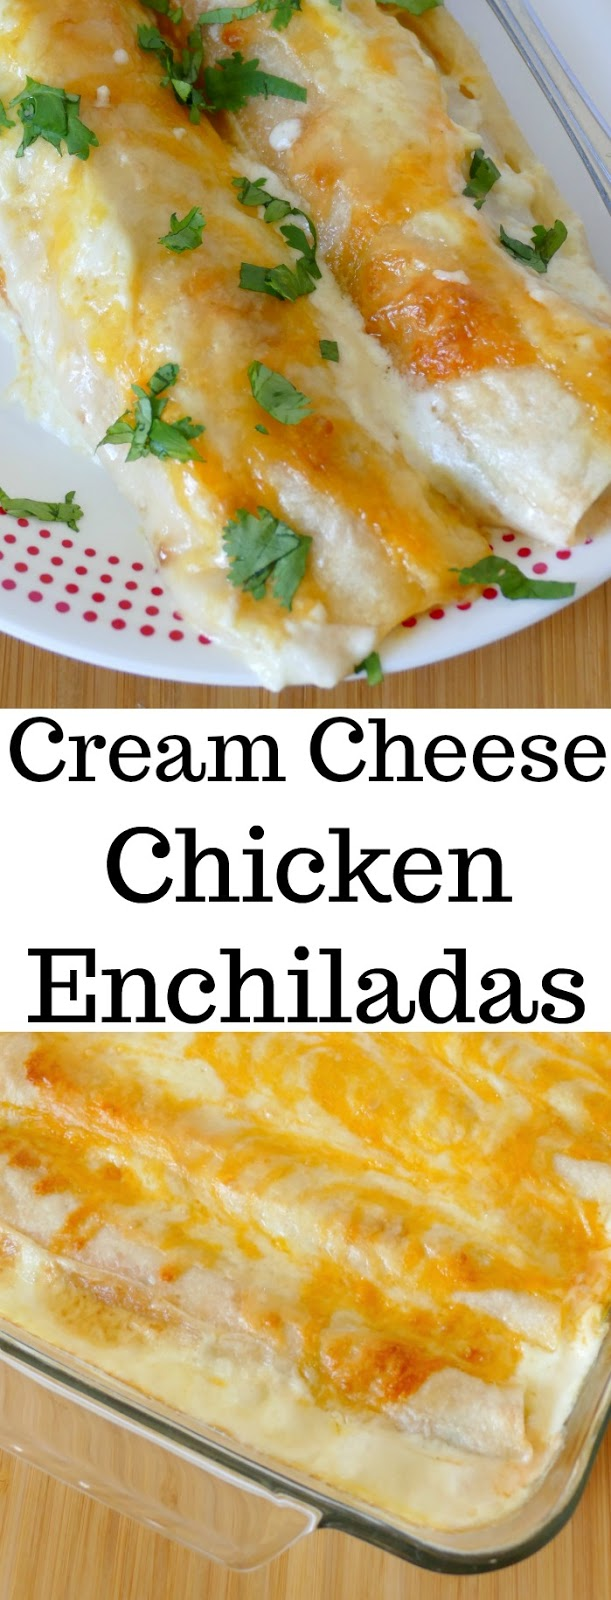 These chicken enchiladas are full of creamy, cheesy goodness! Perfect for Sunday dinner and sure to be a new family favorite! Use rotisserie chicken to save time in the kitchen!